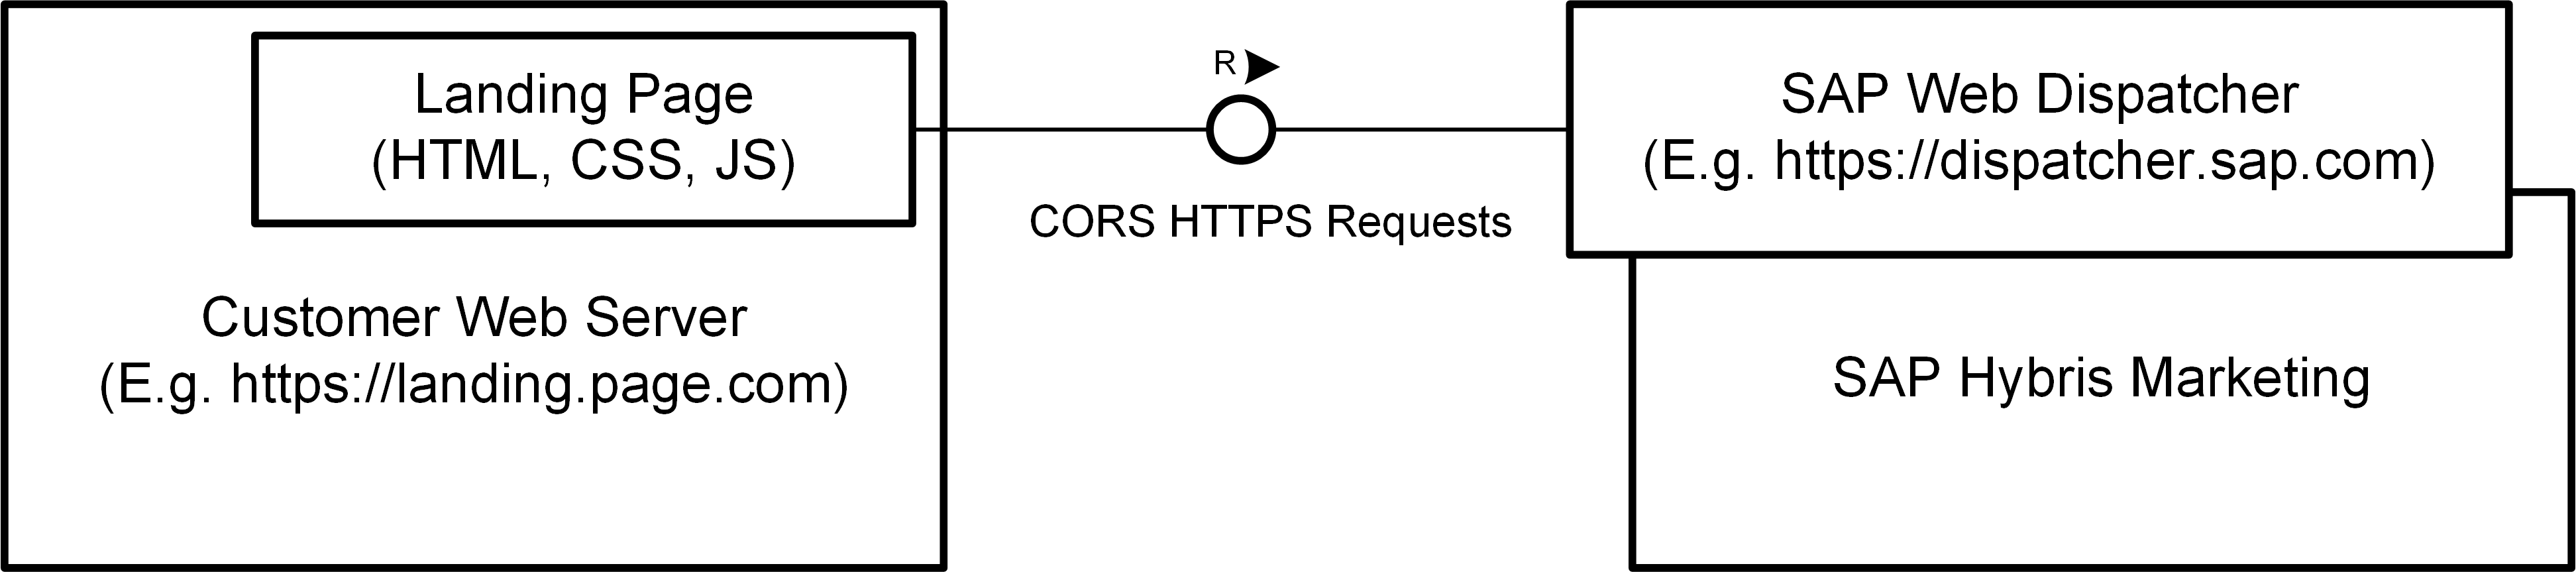 Implementing Sap Hybris Marketing Landing Pages Using The Web Diagram Of Browser Requesting A Page From Server That Will Only Handle Them If Is Https This Means Needs To Use Approach